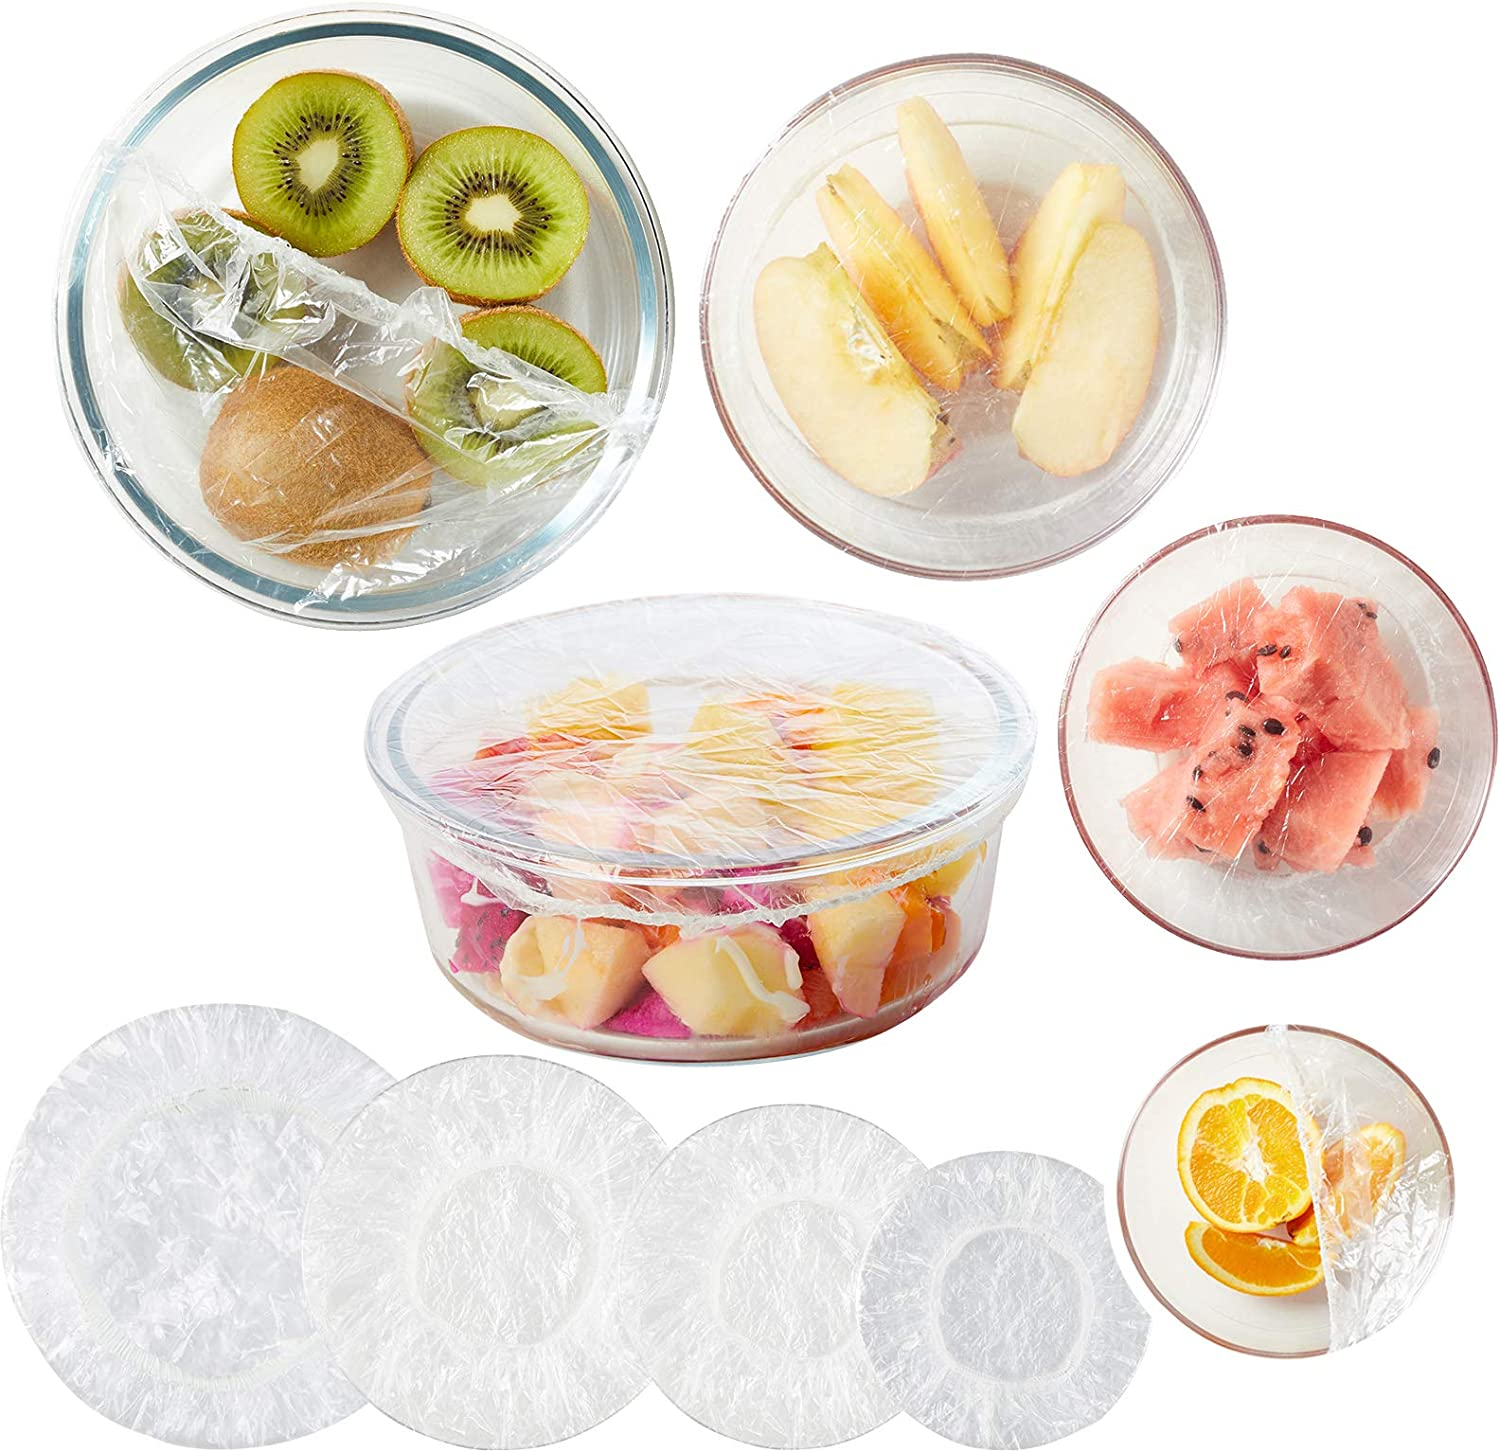 MEQINEL Reusable Bowl Covers with Elastic, 60 PCS Stretch Plastic Warp Food Plate Serving Cover for Leftovers Fruit Outdoor Picnic